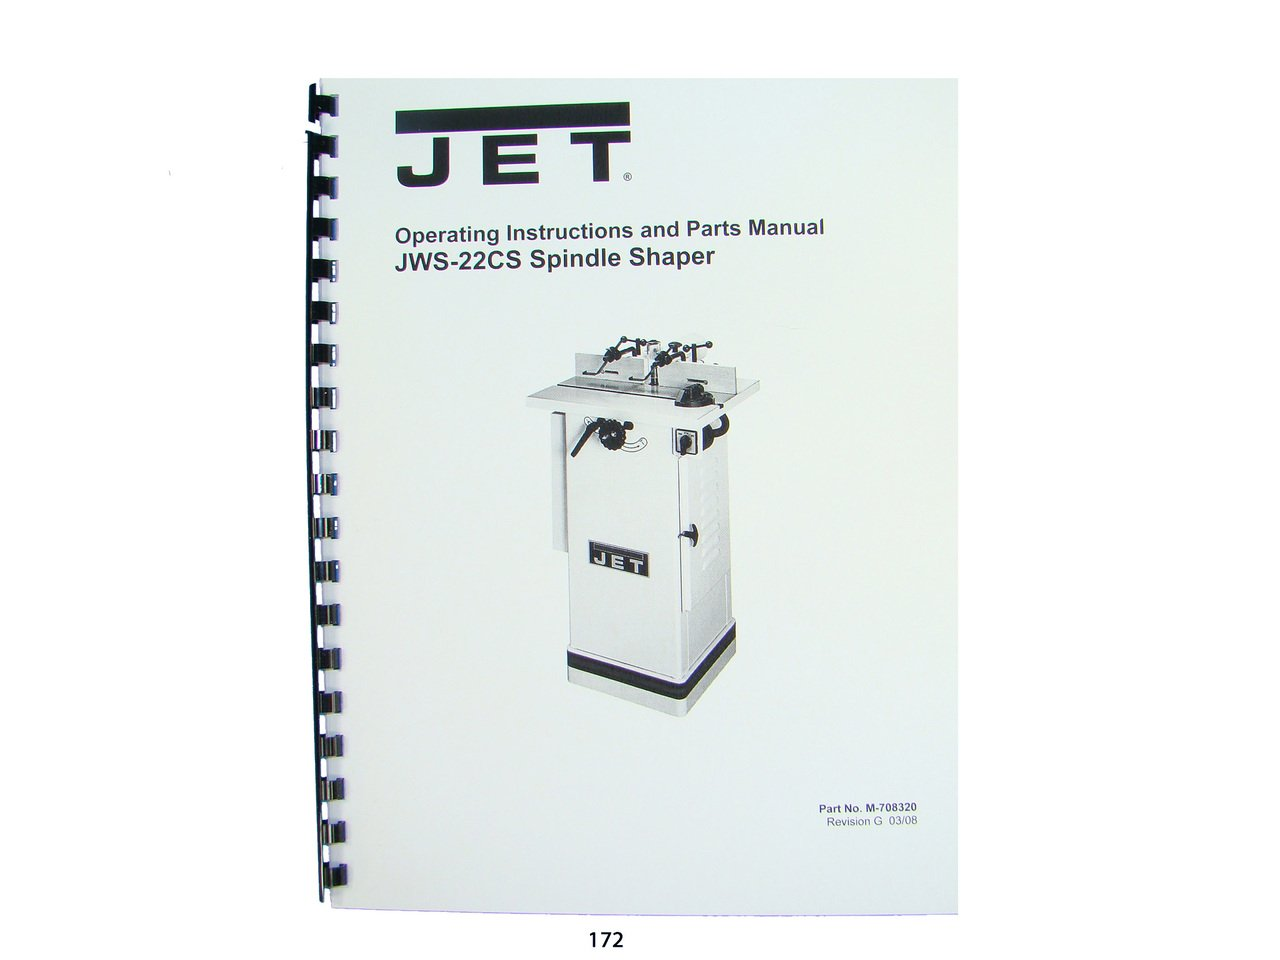 jet jws-22cs spindle shaper operator instruction & parts manual plastic  comb – 1960